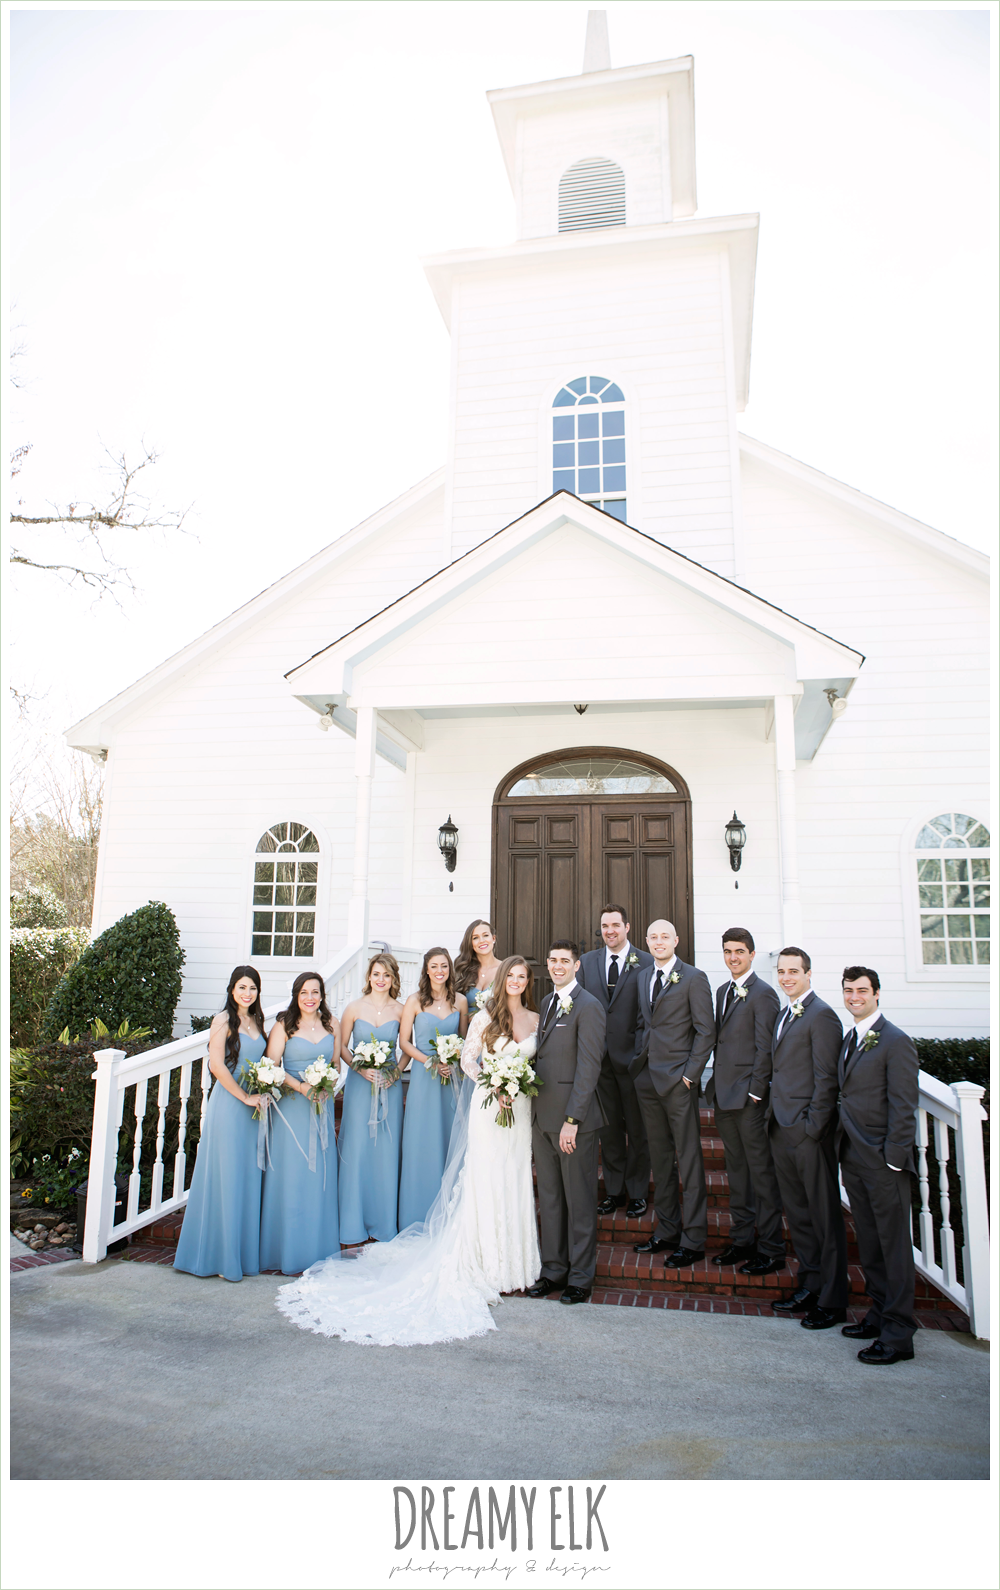 long alfred angelo bridesmaids dress, wedgewood blue, long sleeve lace wedding dress, long lace veil, white wedding bouquet, tricia barksdale designs, white chapel, morning winter january wedding, ashelynn manor {dreamy elk photography and design}